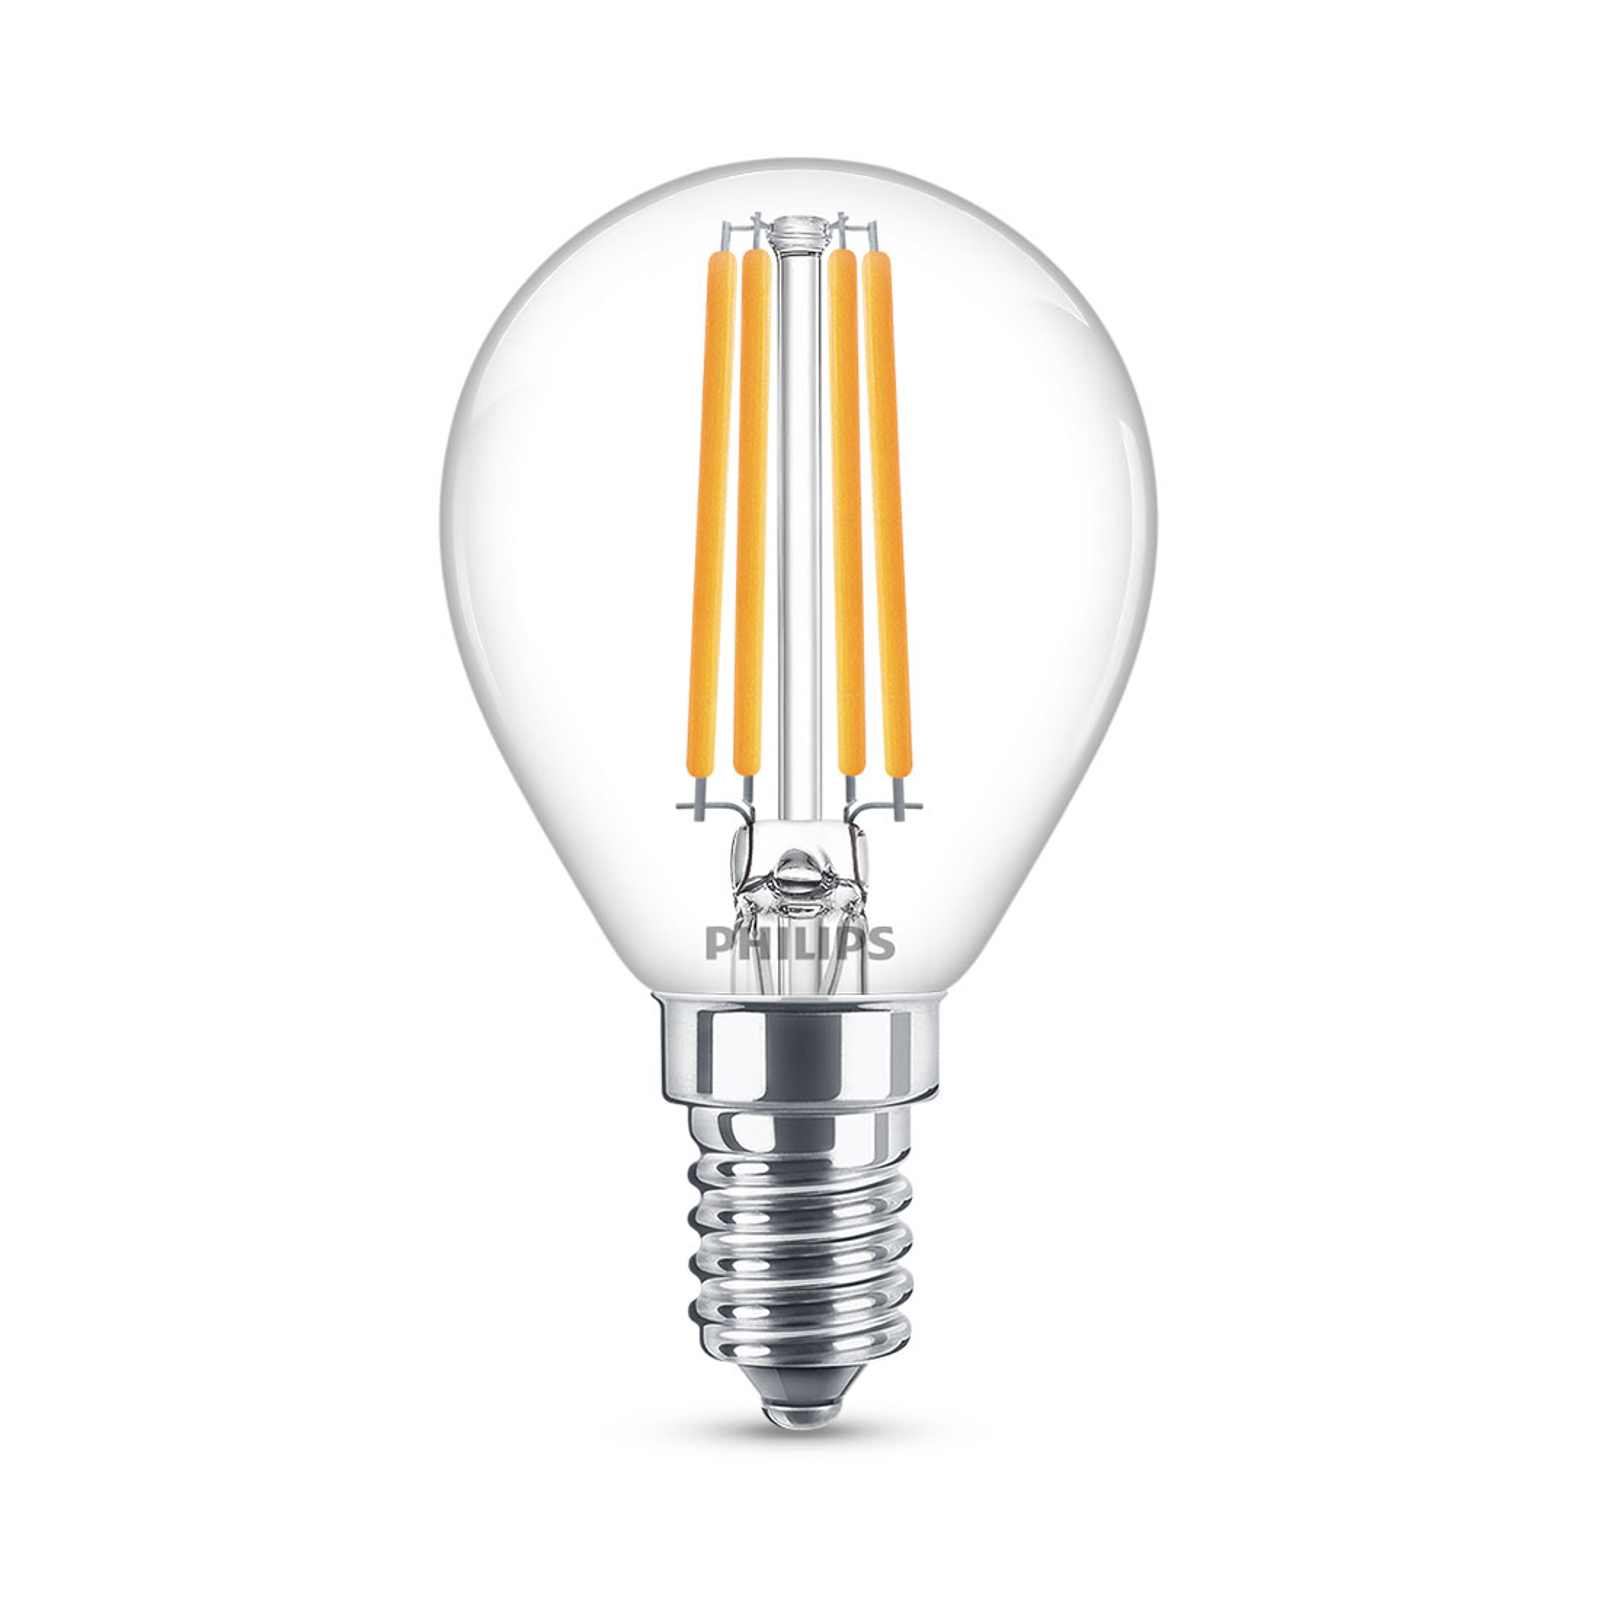 Philips Classic ampoule LED E14 P45 6,5 W 2 700 K